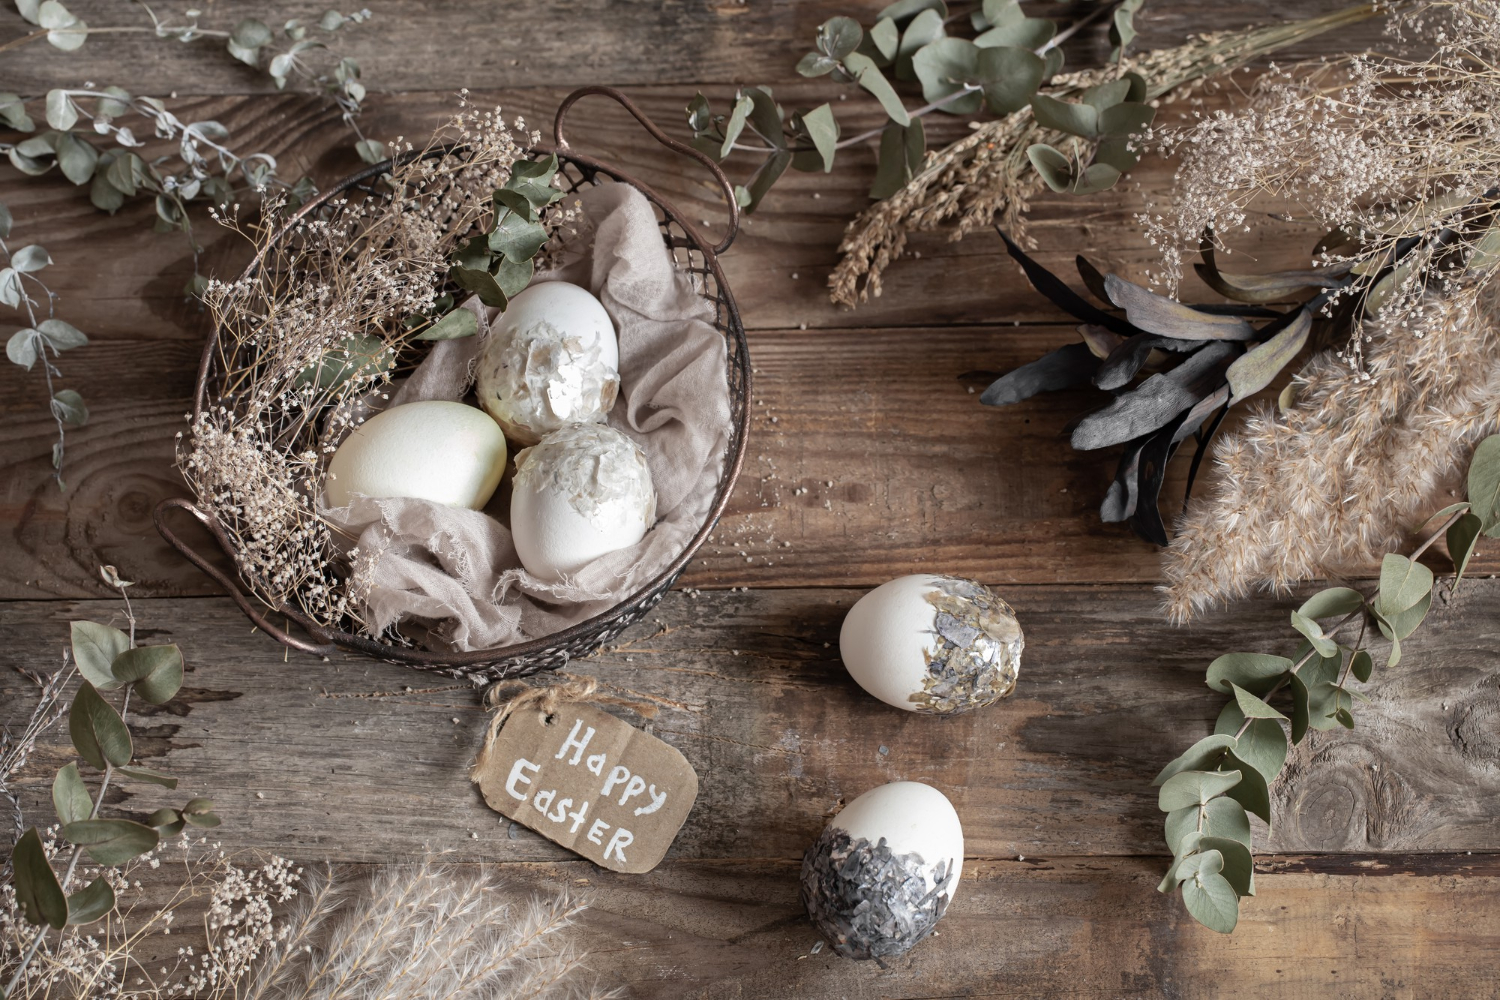 easter-eggs-in-a-decorative-basket-with-dried-flowers-on-a-wooden-table-happy-easter-concept